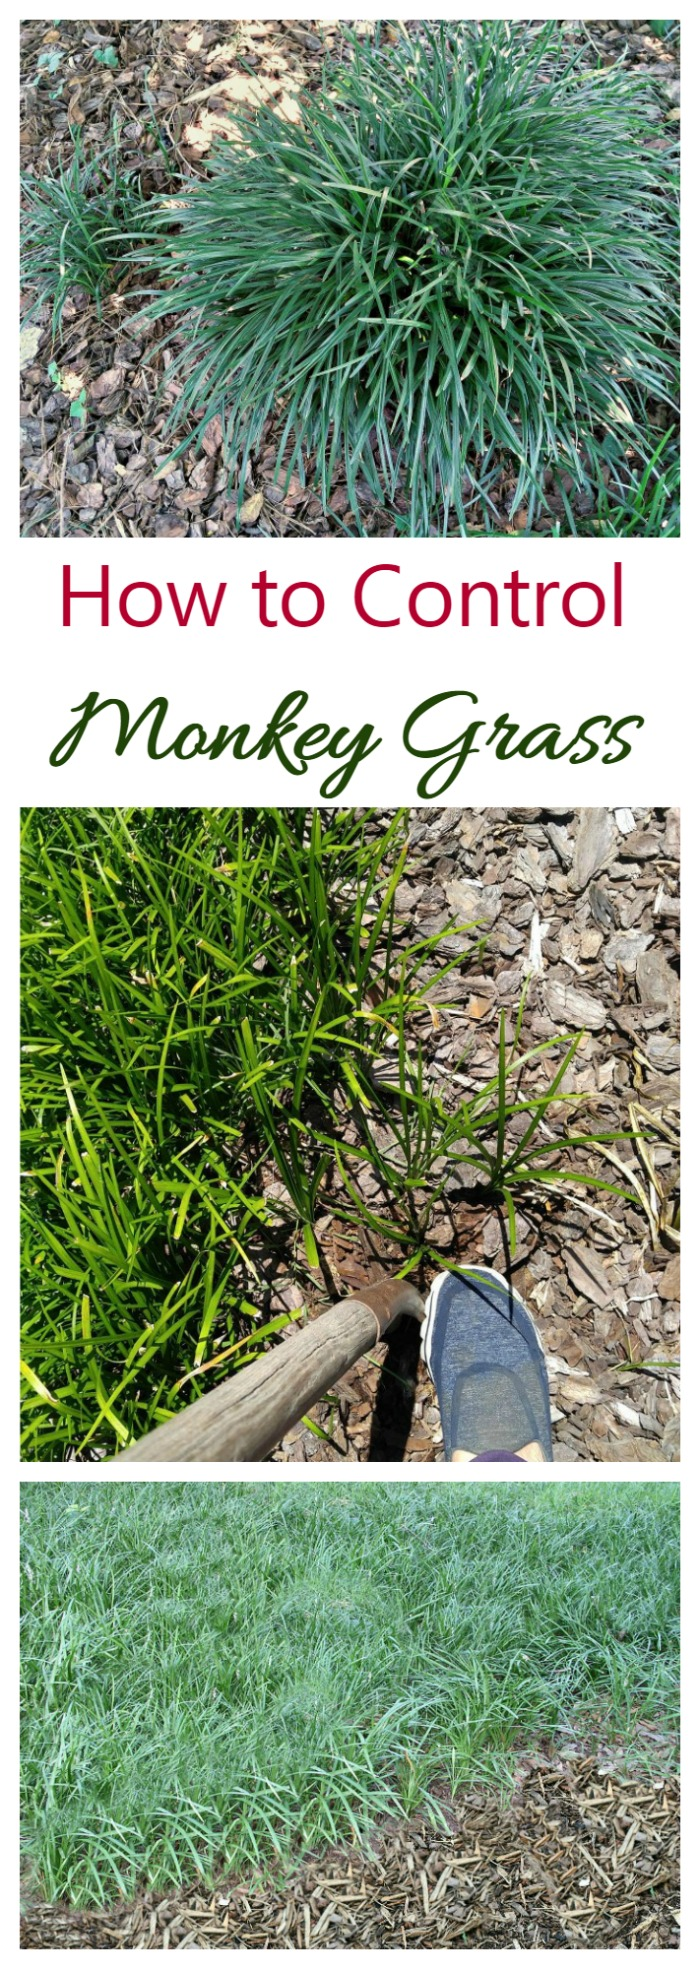 Controlling monkey grass can be a chore bu these tips will help to keep this invasive perennial from taking over your garden.